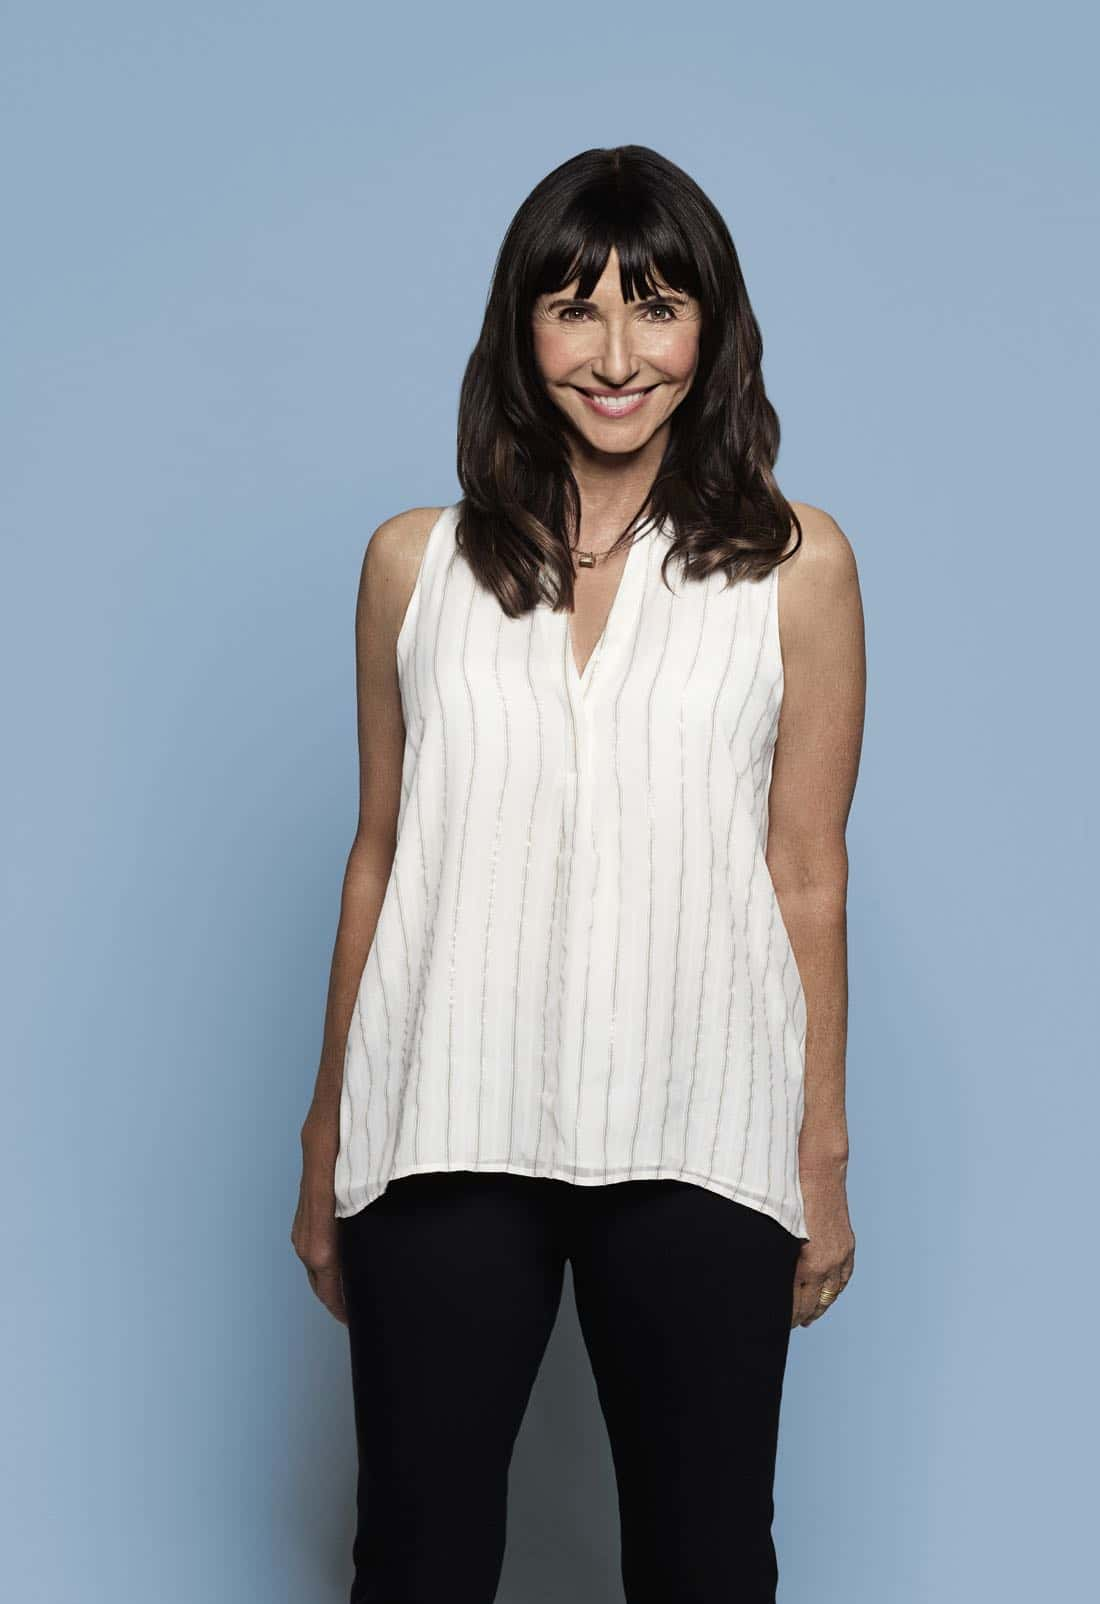 THE LAST MAN ON EARTH: Mary Steenburgen as Gail in the LAST MAN ON EARTH season four premiere Sunday, Oct. 1 (9:30-10:00 PM ET/PT) on FOX. ©2017 Fox Broadcasting Company. Cr: Pamela Littky/FOX